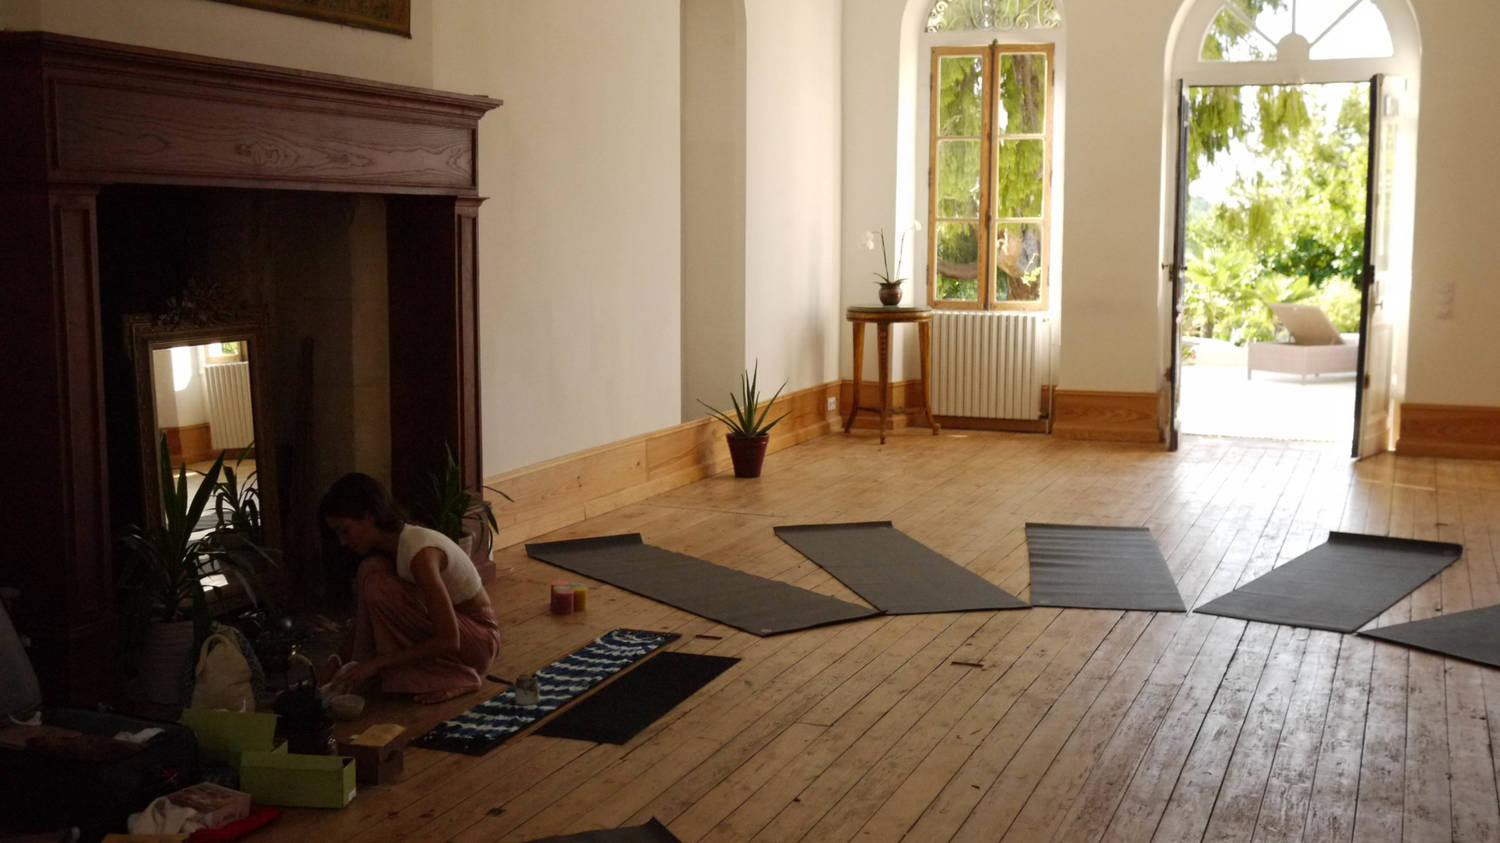 Chateau Fengari's studio set up for yoga, with mats and bolsters in a circle.